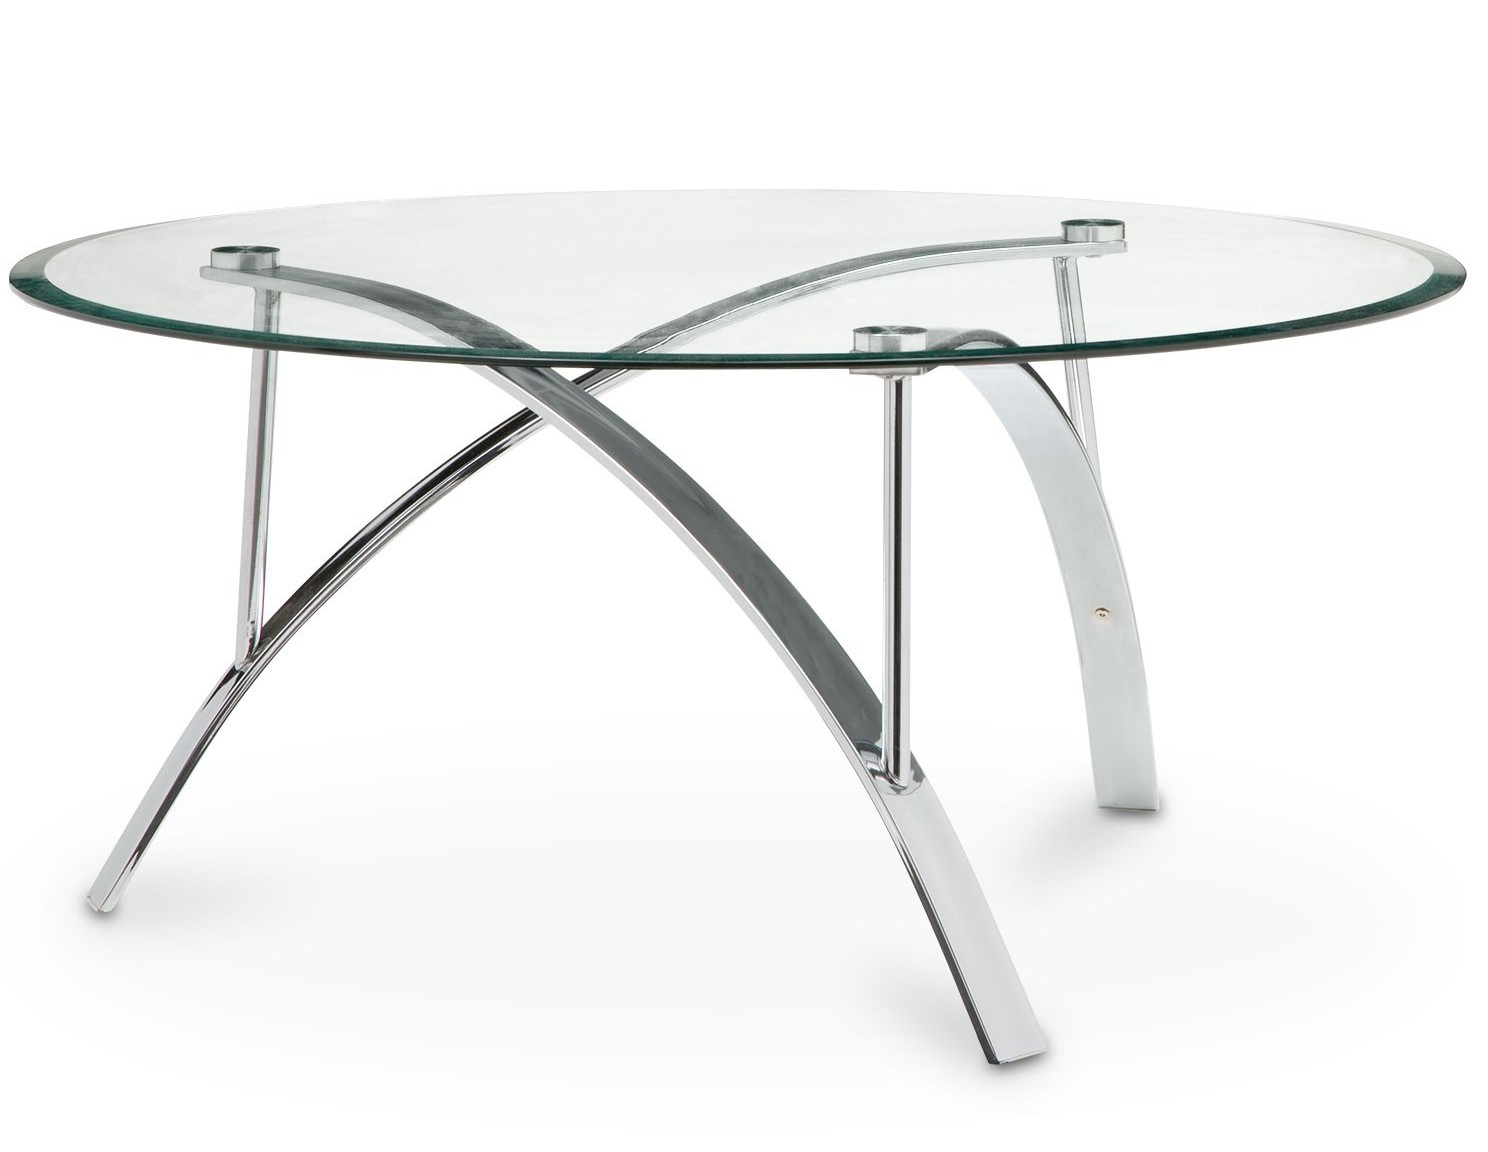 modern glass coffee tables under $200 with metal legs